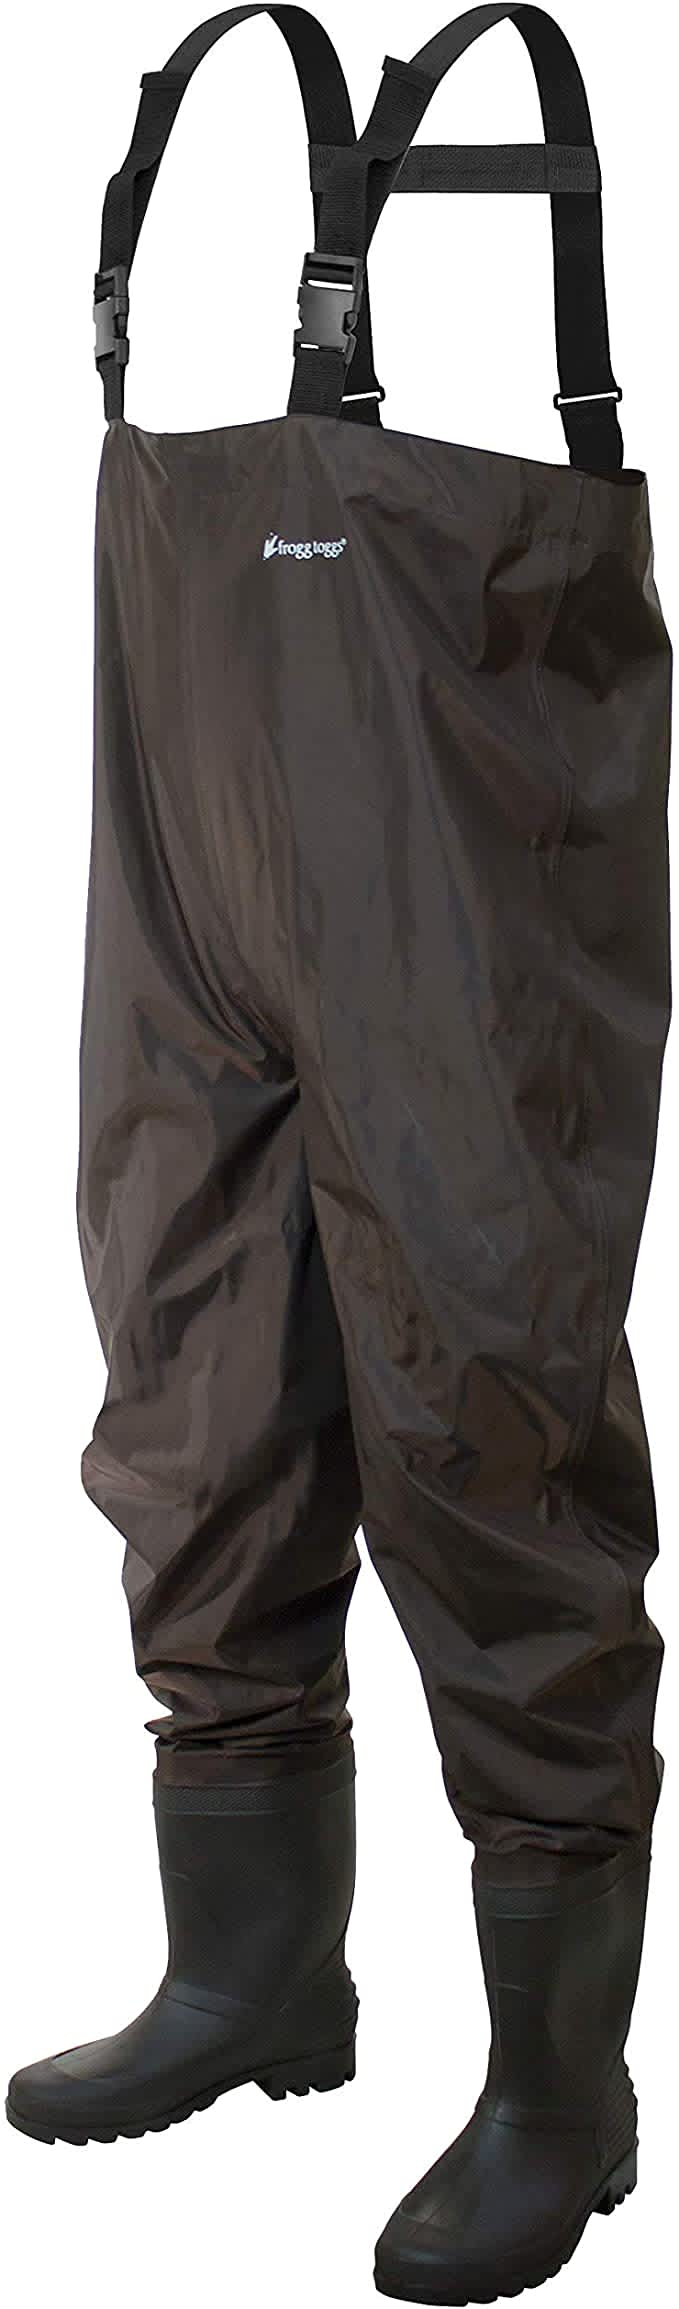 Frogg Toggs Rana II PVC Bootfoot Chest Waders